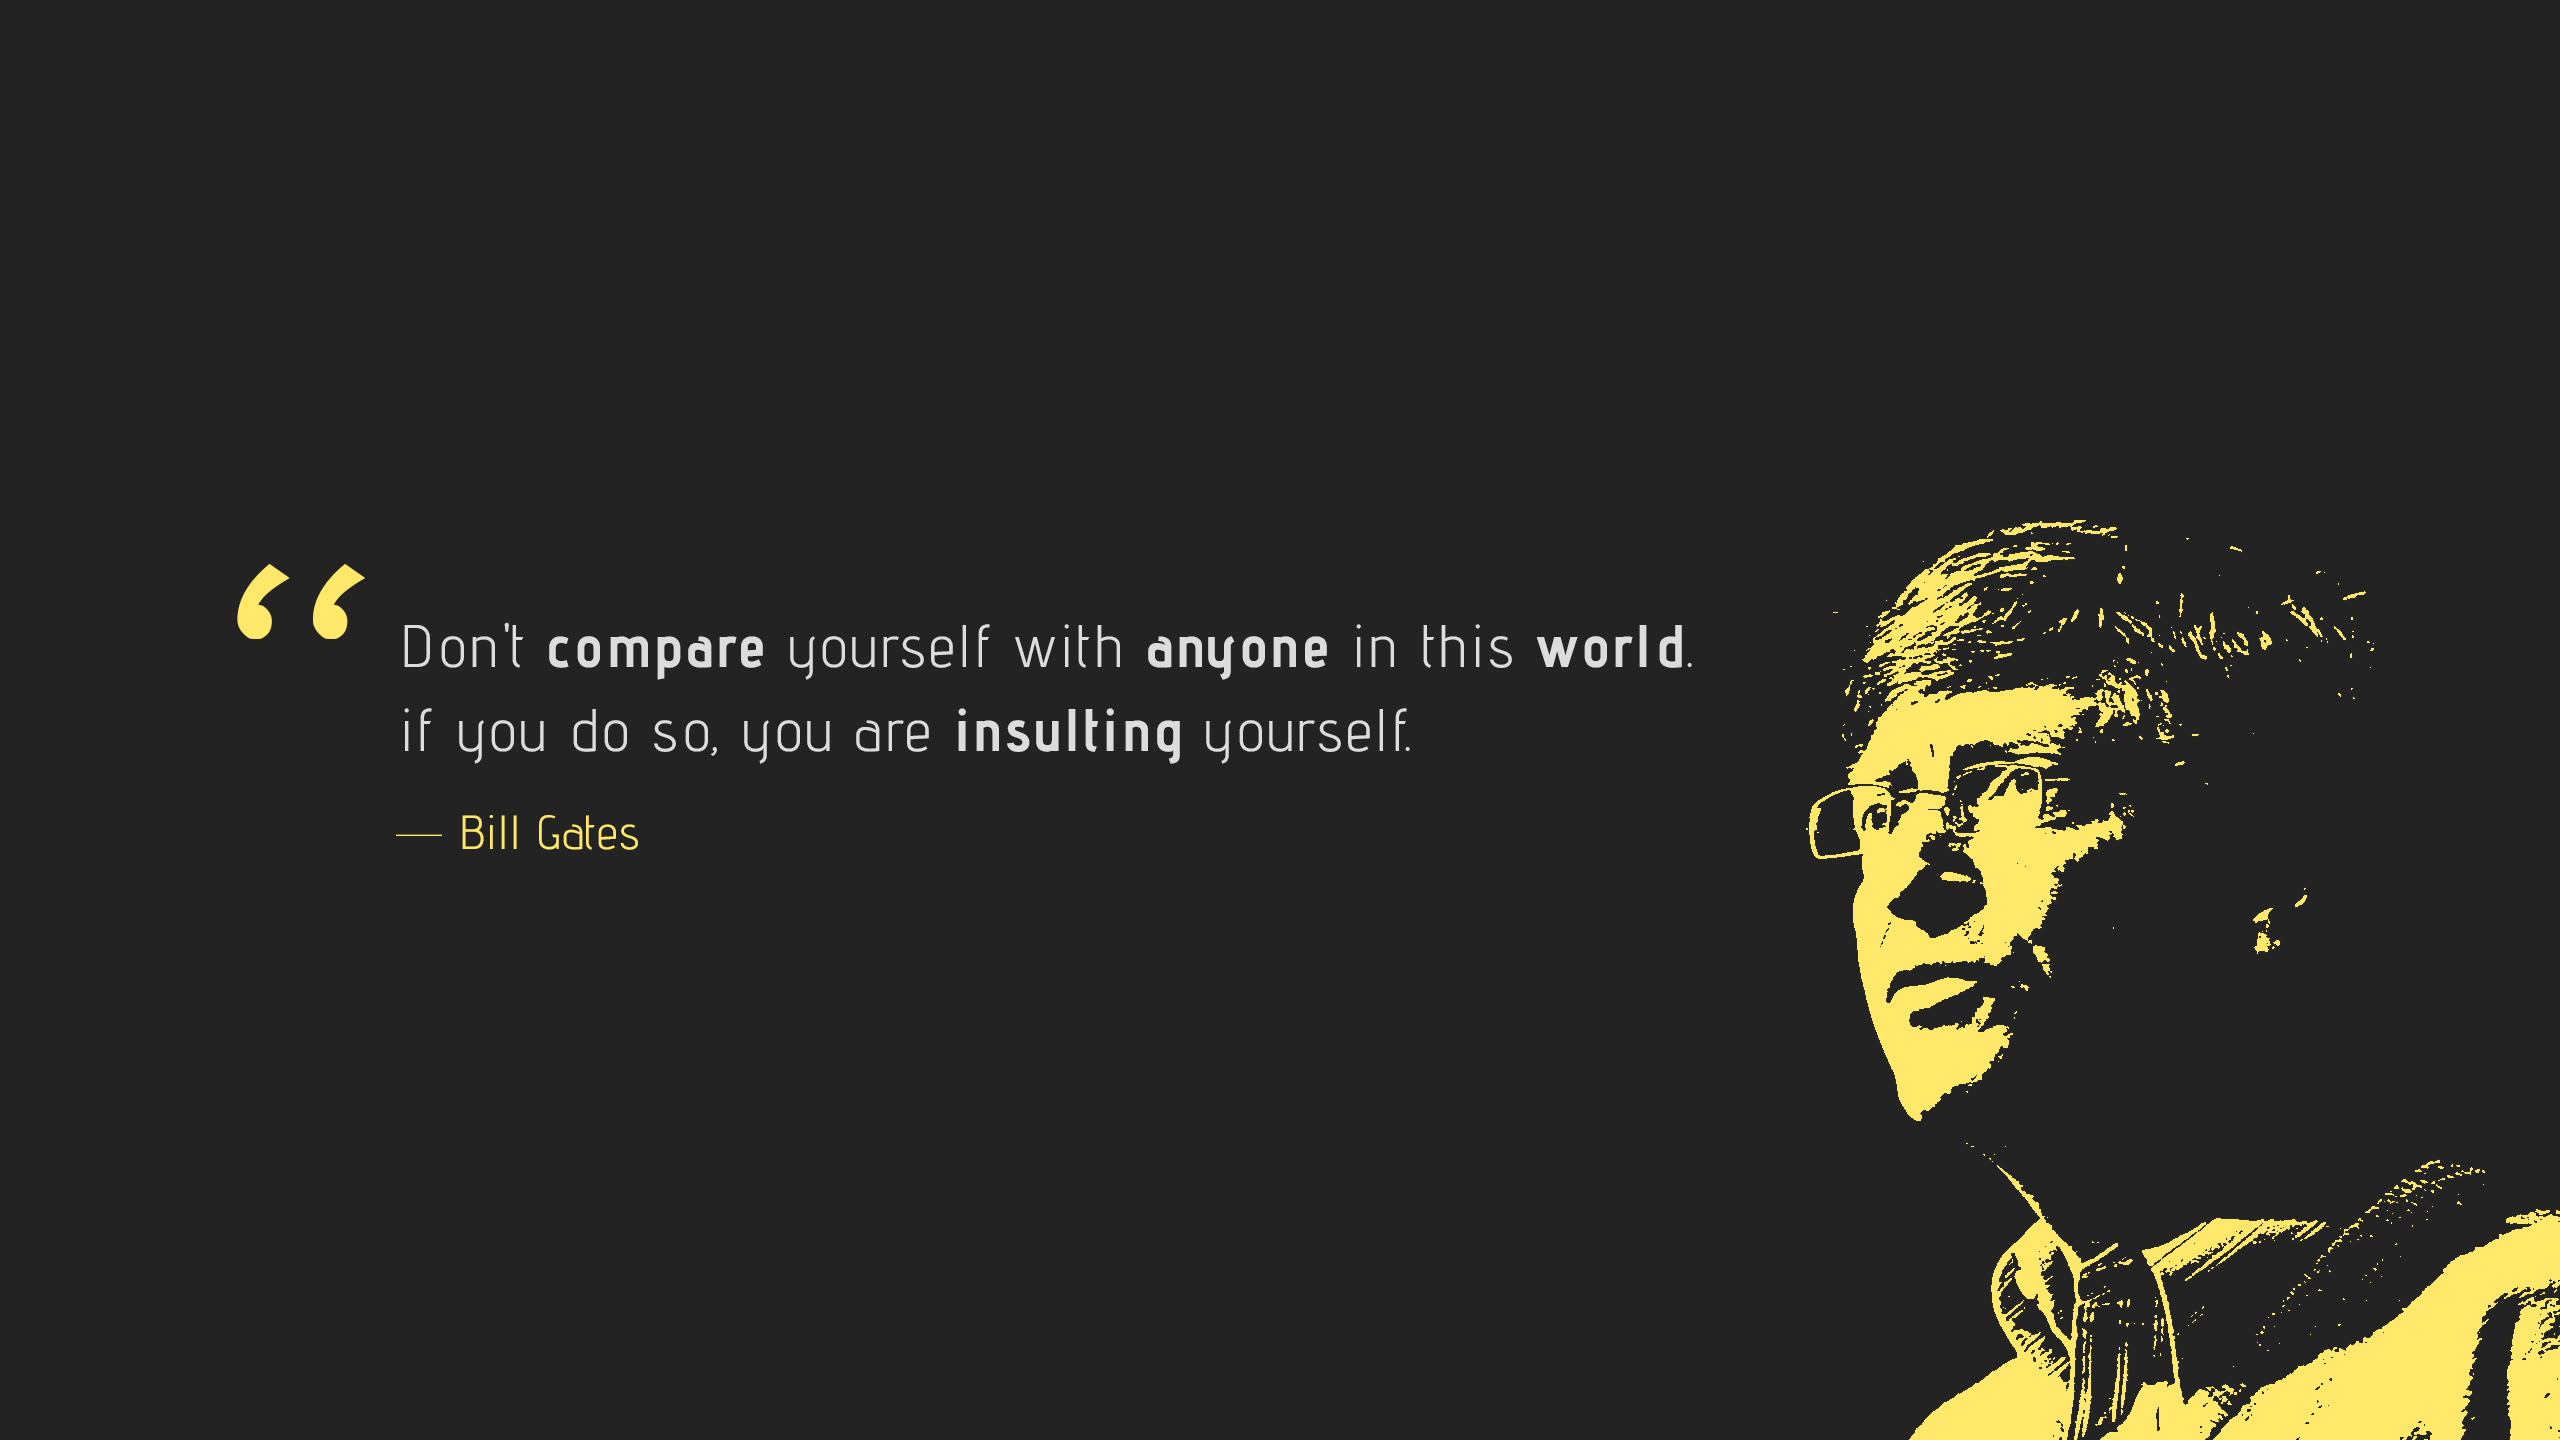 Don't Compare, Insulting Yourself, Bill Gates, Popular Quotes, HD, Typography